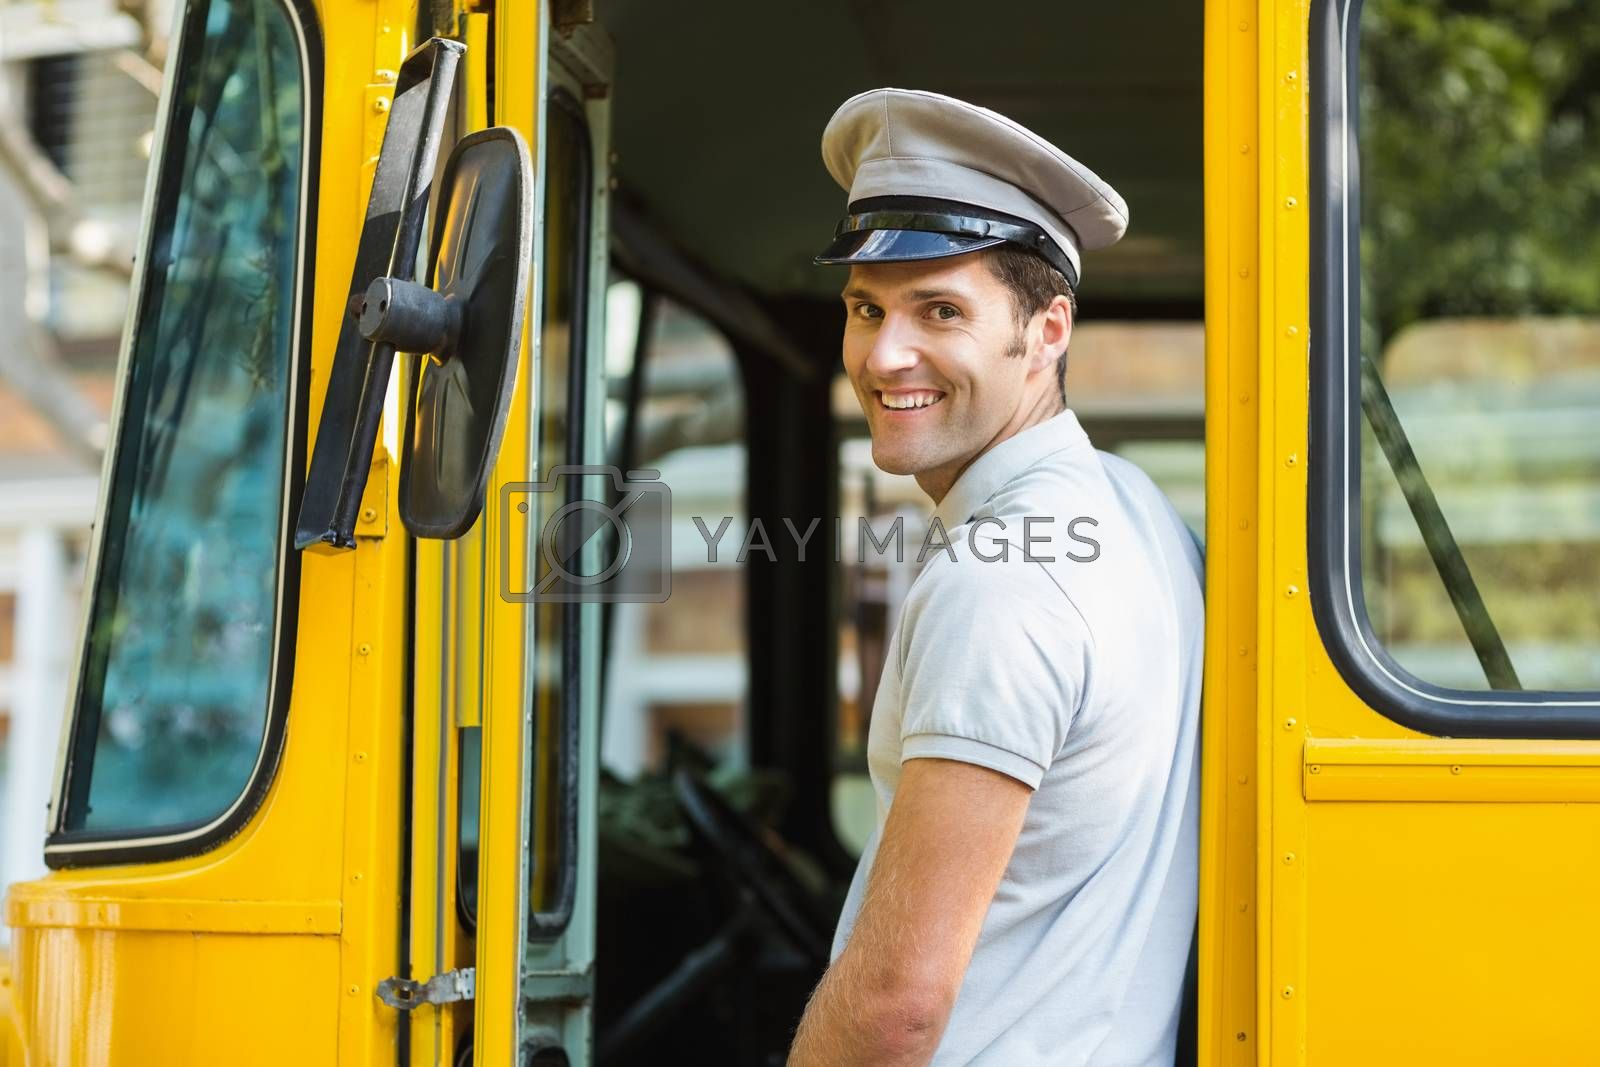 Bus driver smiling while entering in bus by Wavebreakmedia